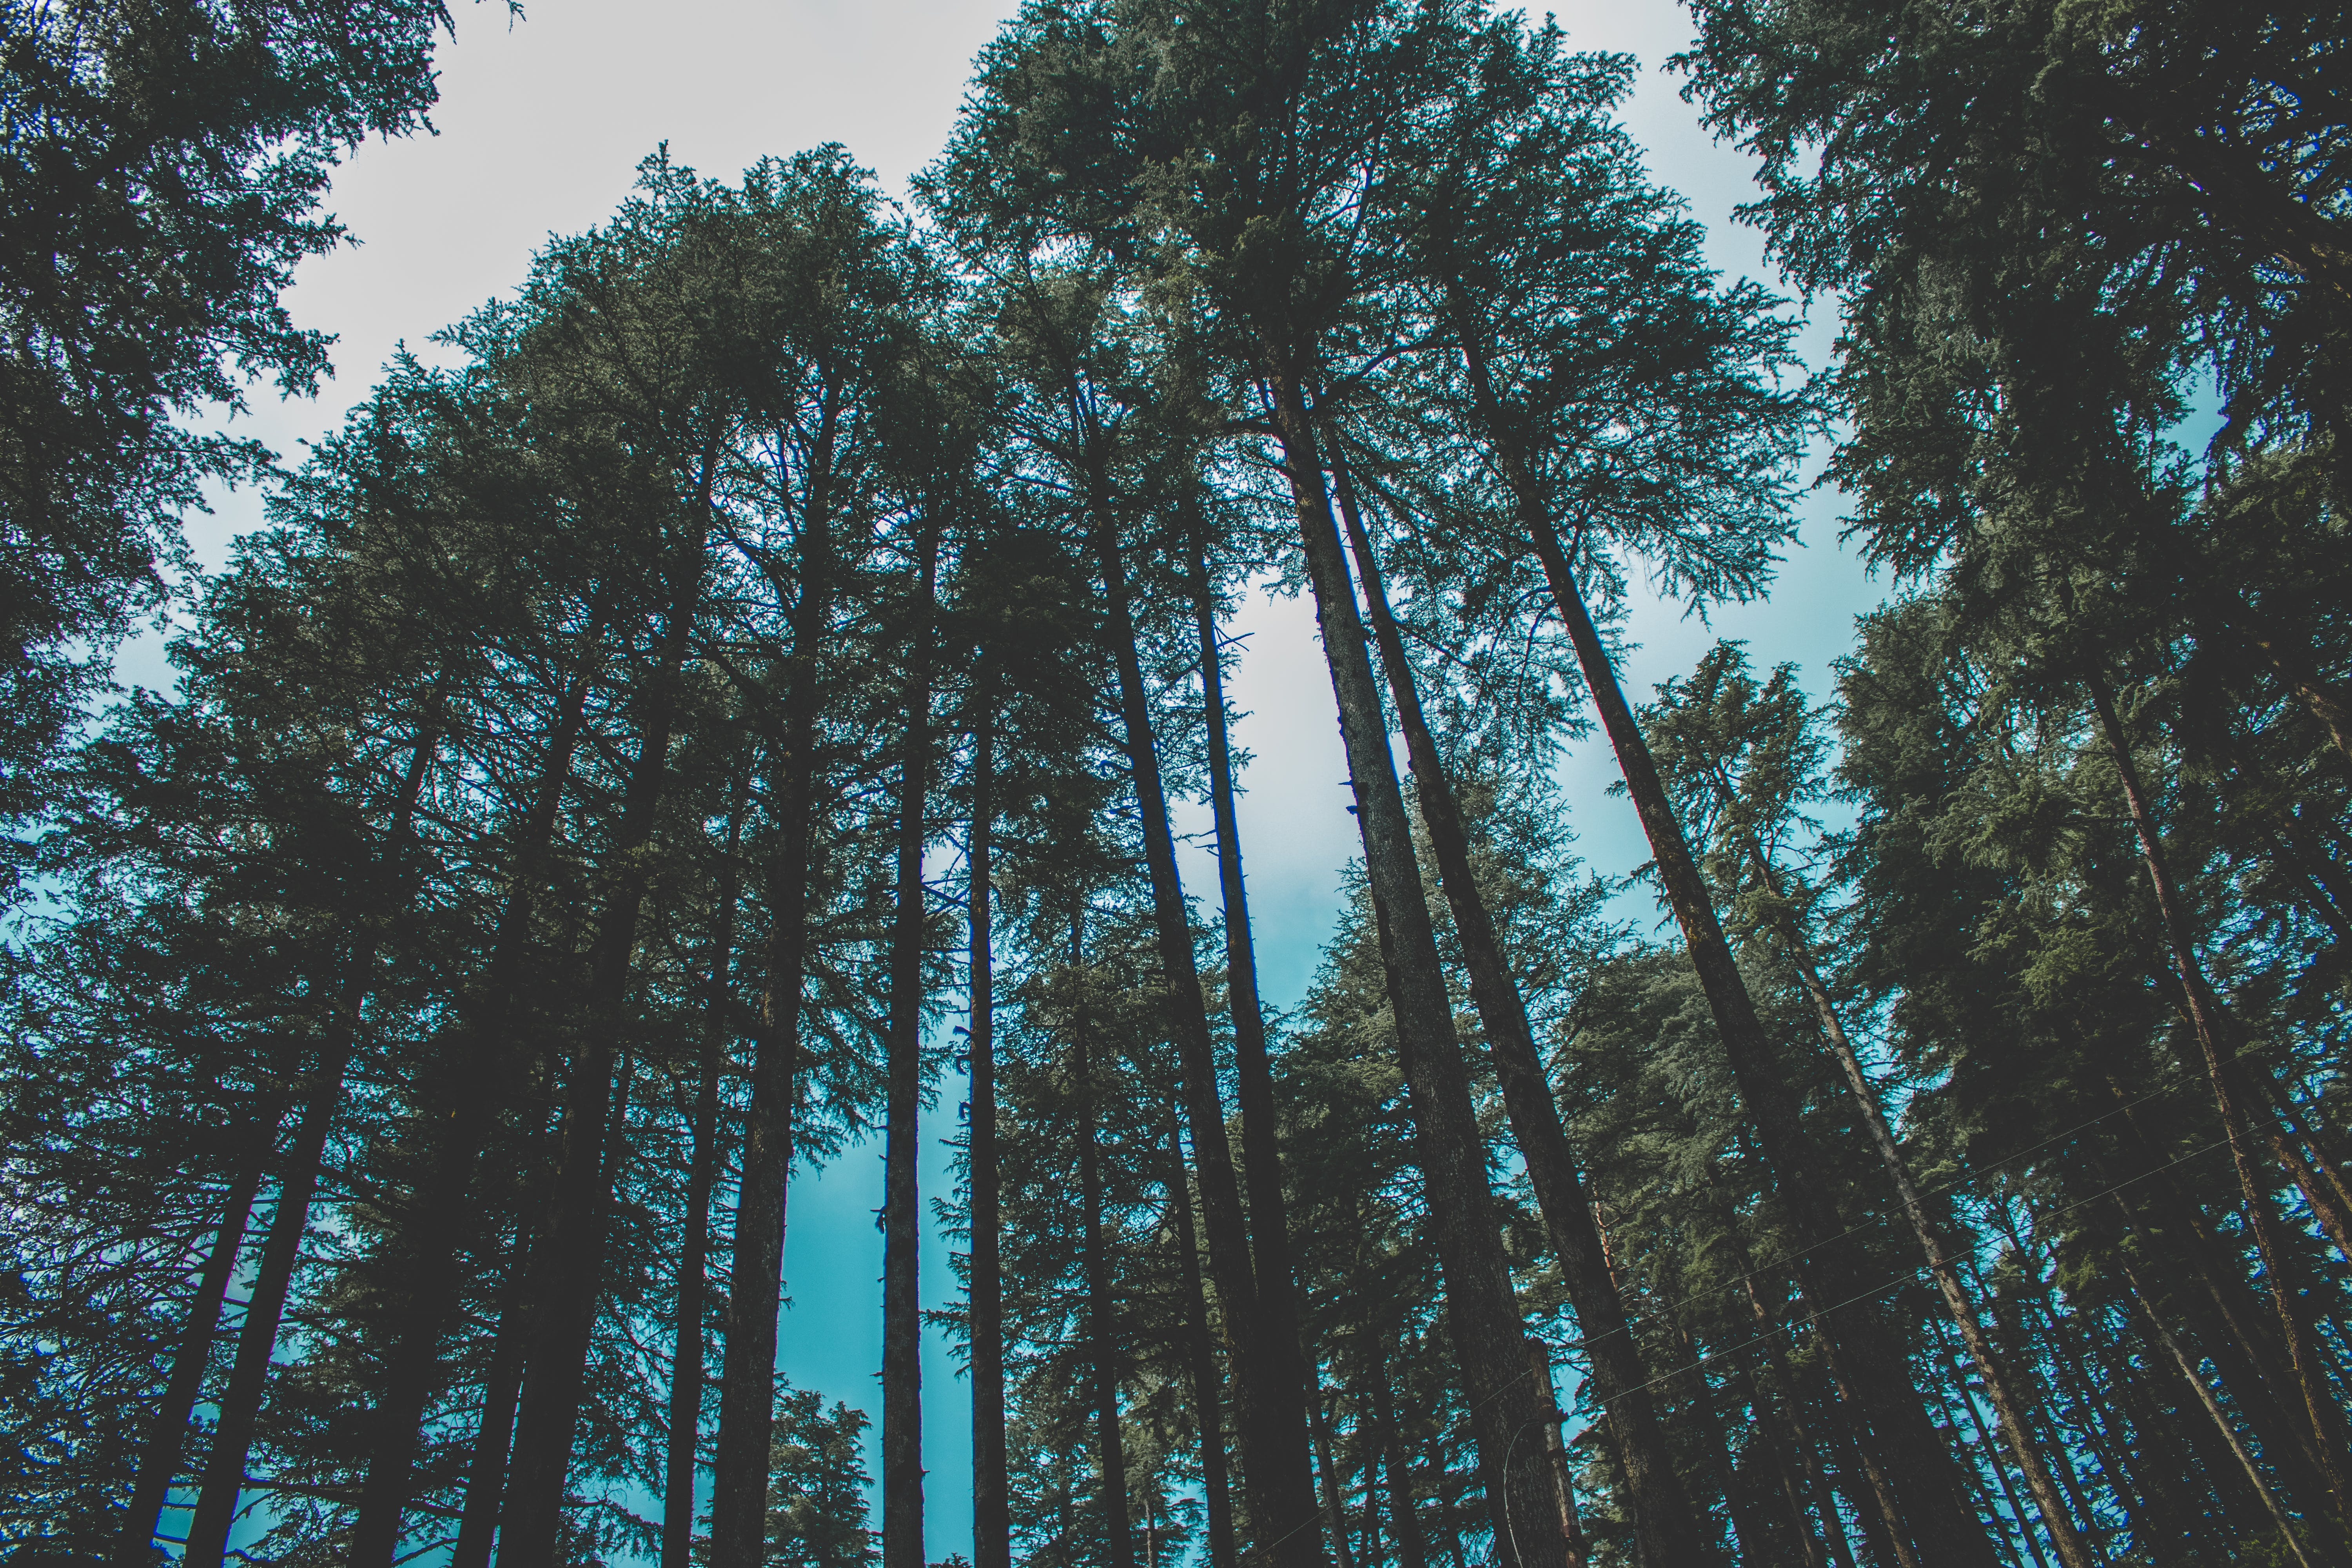 Worm's Eye View Photography of Forest Trees